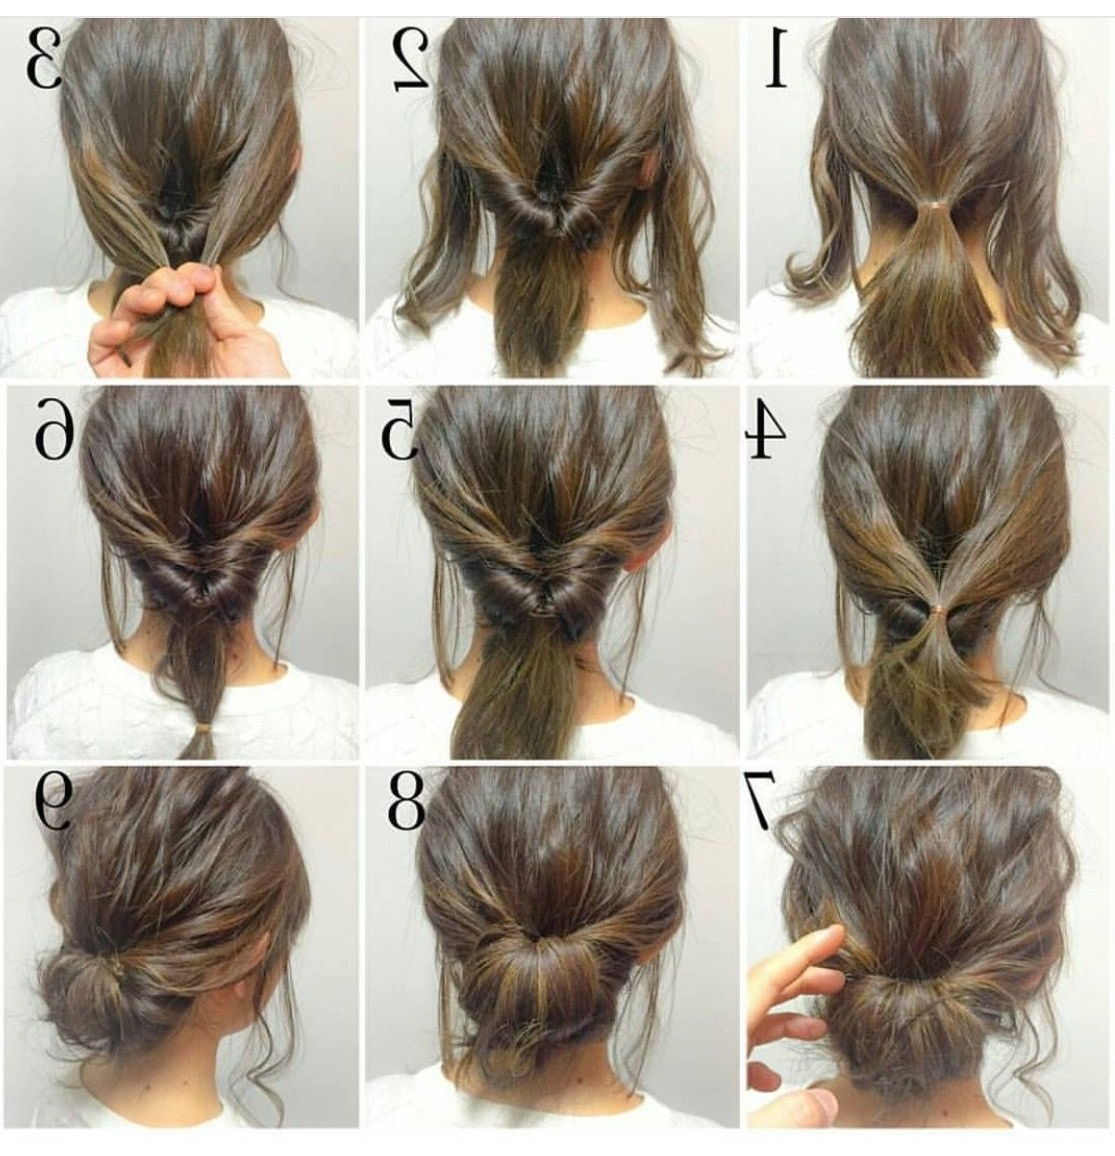 Easy, Hope This Works Out Quick Morning Hair! | • H A I R Regarding Long Hair Updo Hairstyles For Work (Gallery 2 of 15)